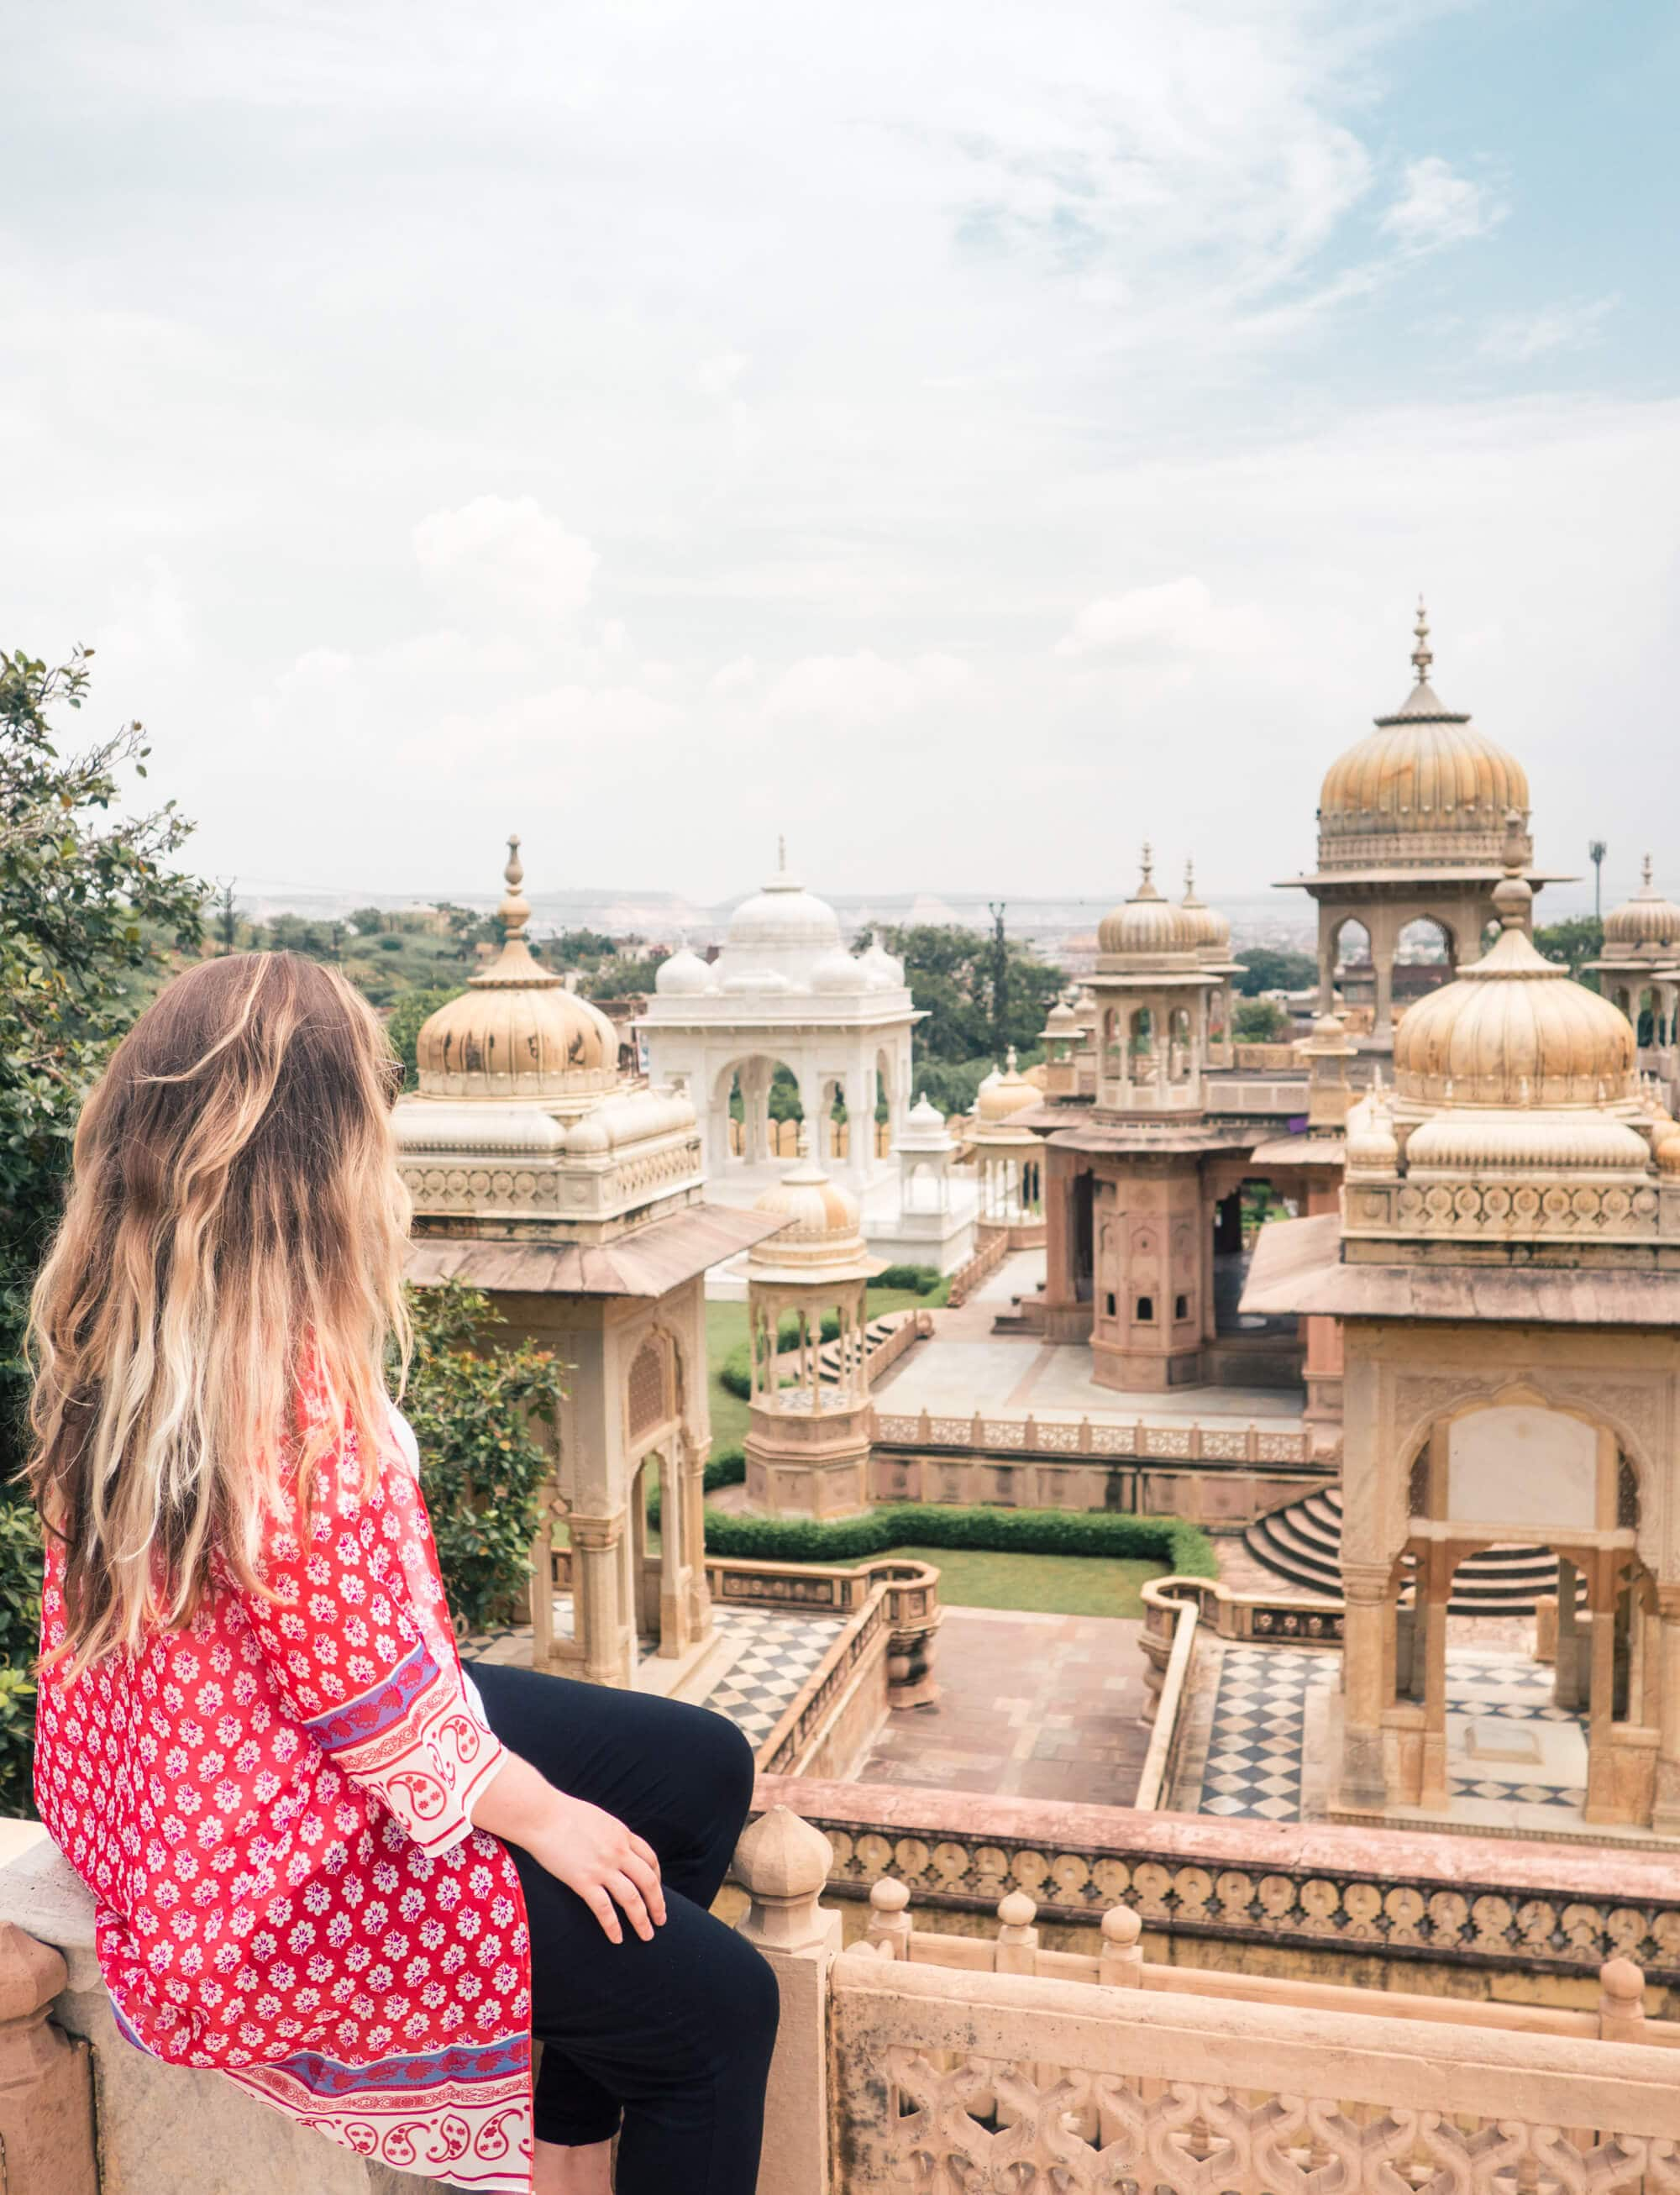 How to spend 2 days in Jaipur - Gatore Ki Chatriyan